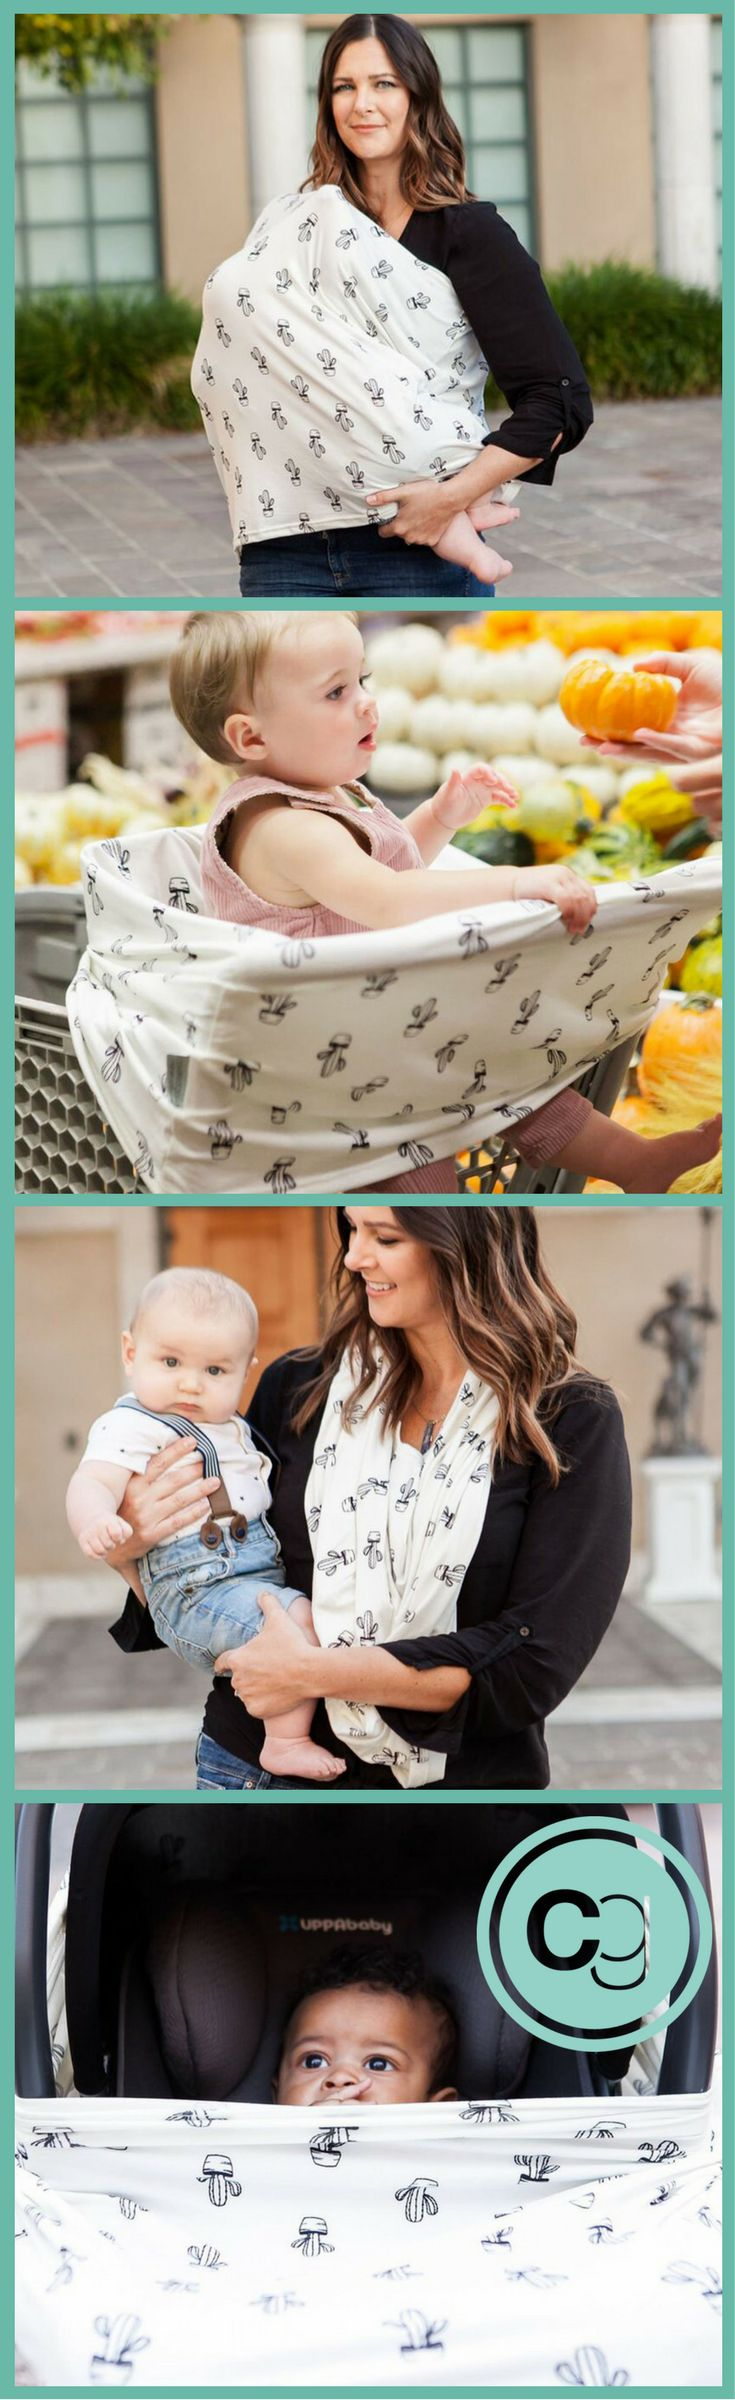 Nursing Cover, Shopping Cart Cover, Scarf and Carseat Cover. Original 4-in-1 multi-use cover for moms in our Desert Cactus pattern. Now Introducing Covered Goods in a new buttery-soft fabric we know you will just love.